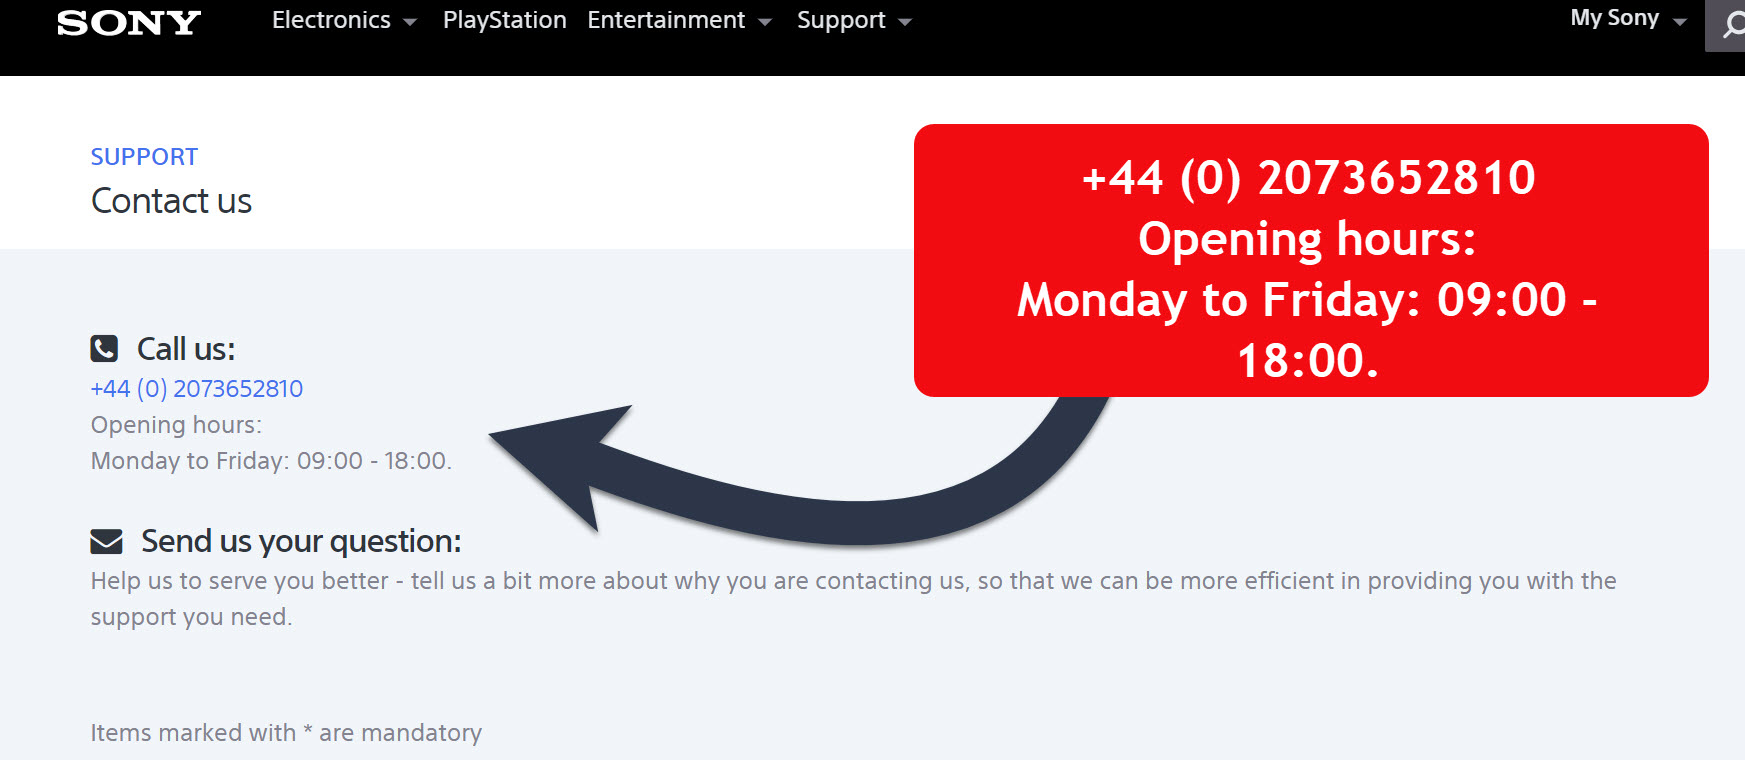 Sony contact number and service opening hours